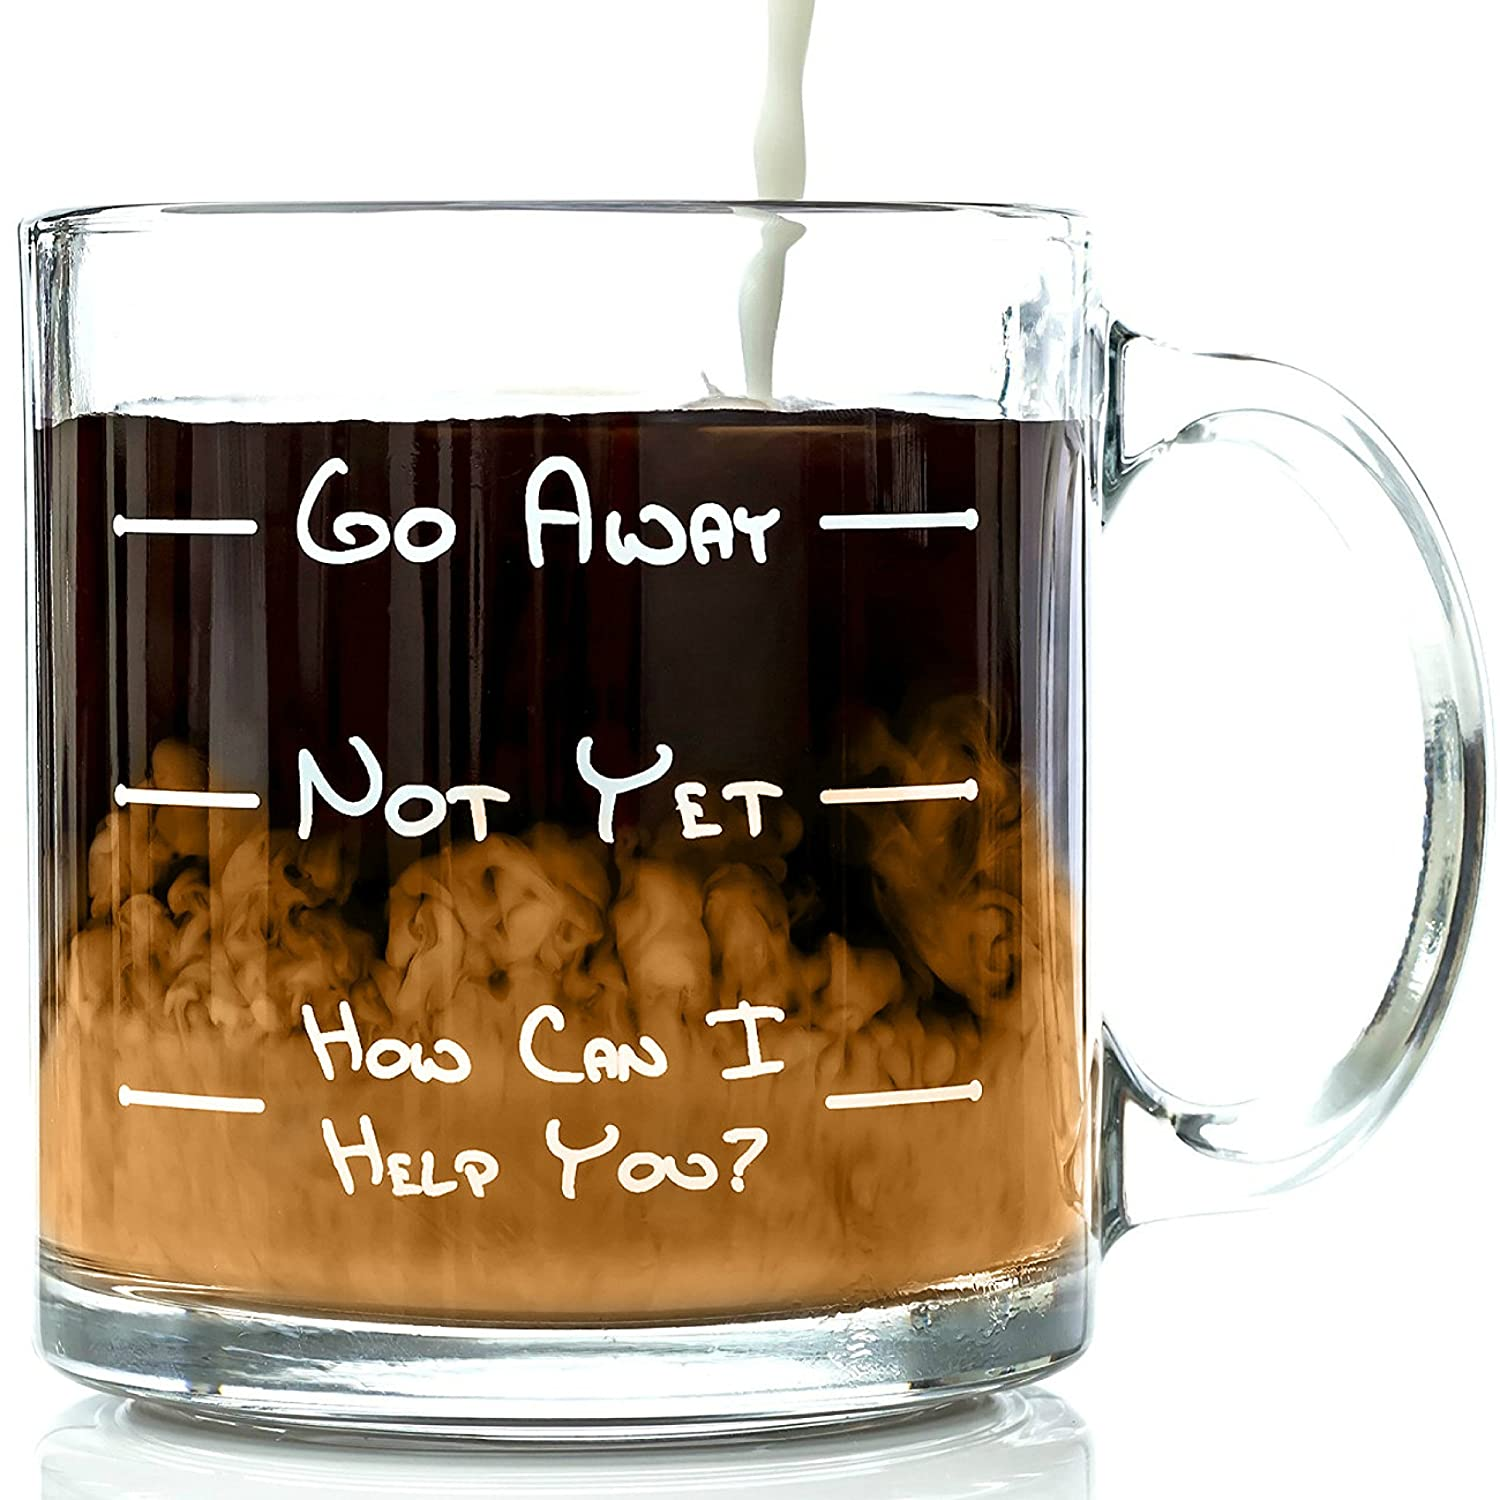 Go Away Funny Glass Coffee Mug 13 oz - Unique Father's Day Gift For Men & Women, Him or Her - Best Office Cup & Birthday Present Idea For Mom, Dad, Husband, Wife, Boyfriend, Girlfriend or Coworkers